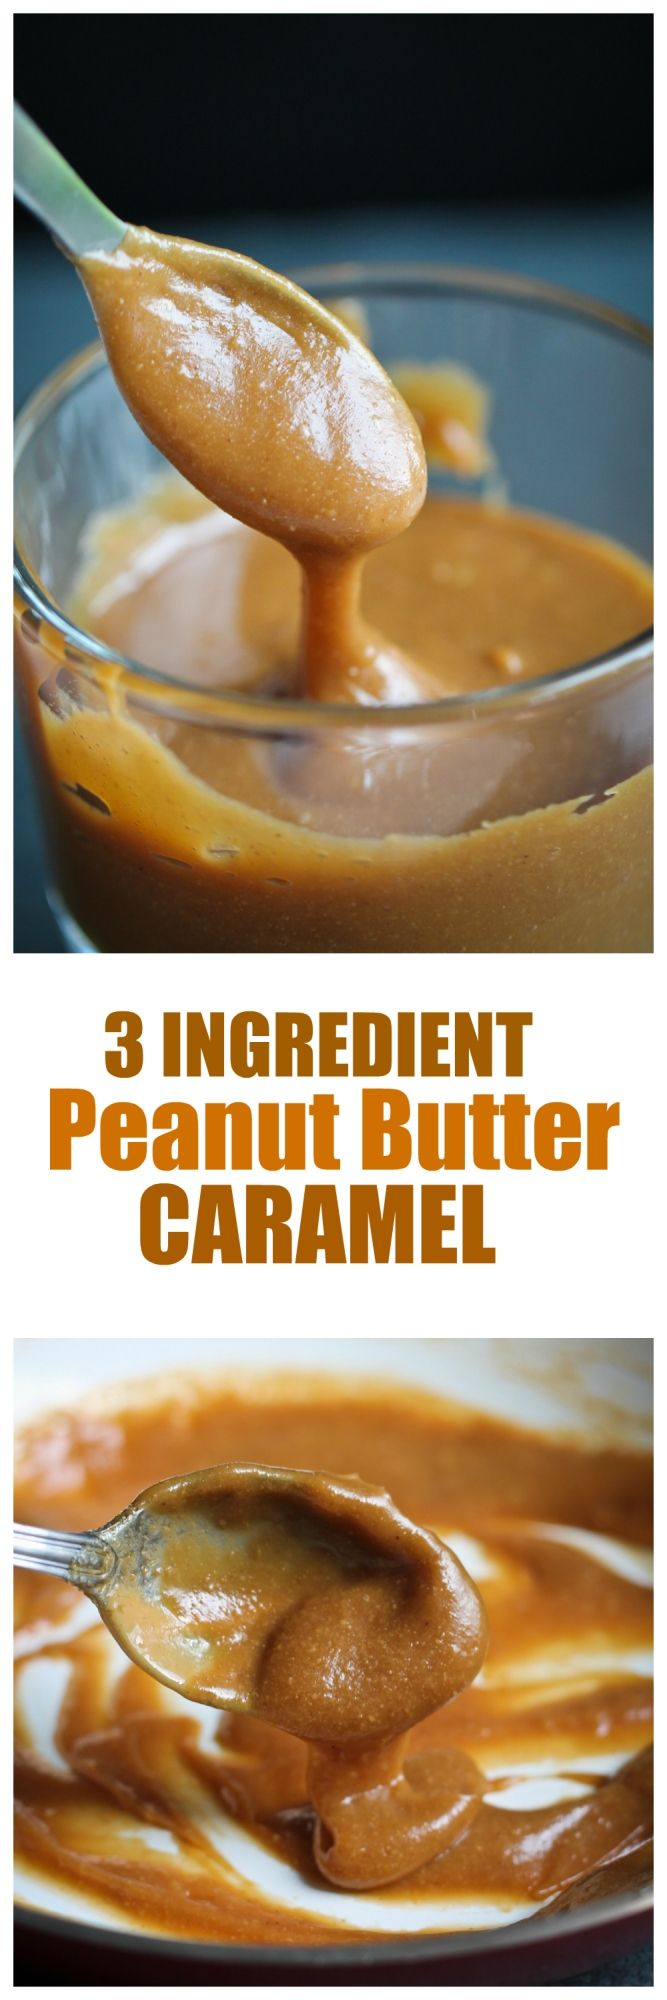 I know, I know....another post involving peanut butter. I swear, I normally don't eat that much peanut butter at all during the year. For some weird reason lately though, many of my recipe ideas in...